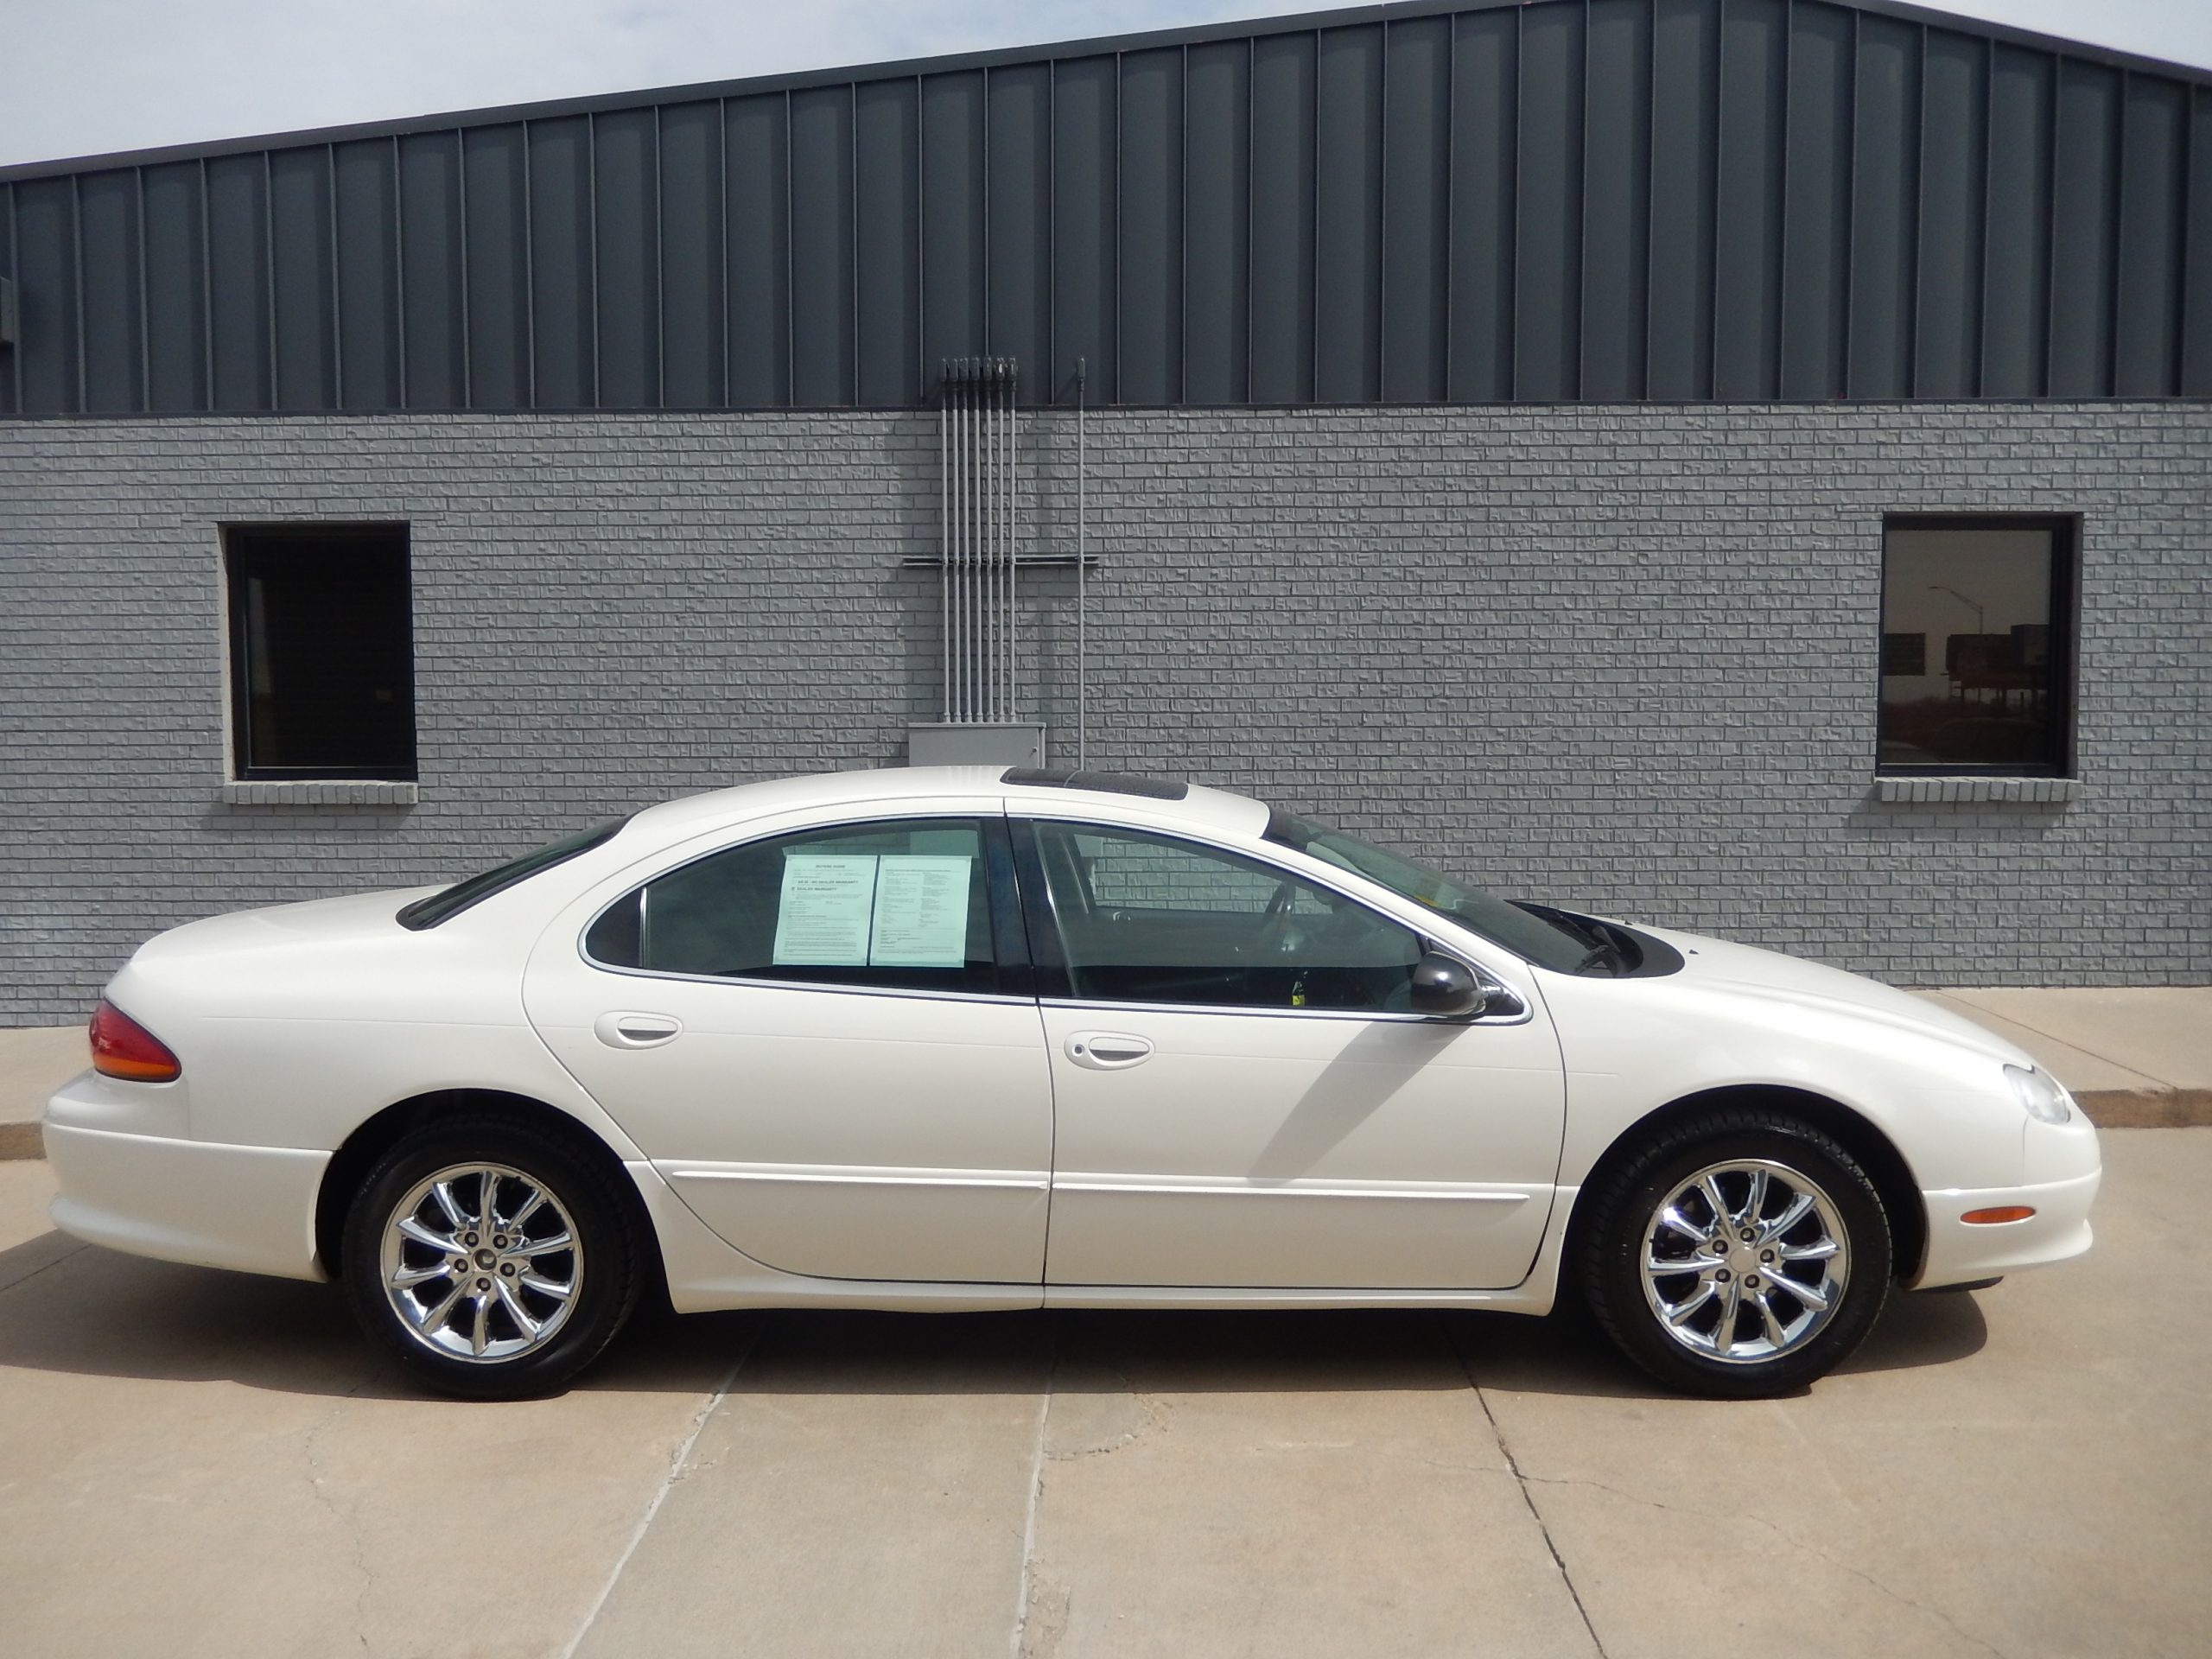 Used 2002 Chrysler  Concorde